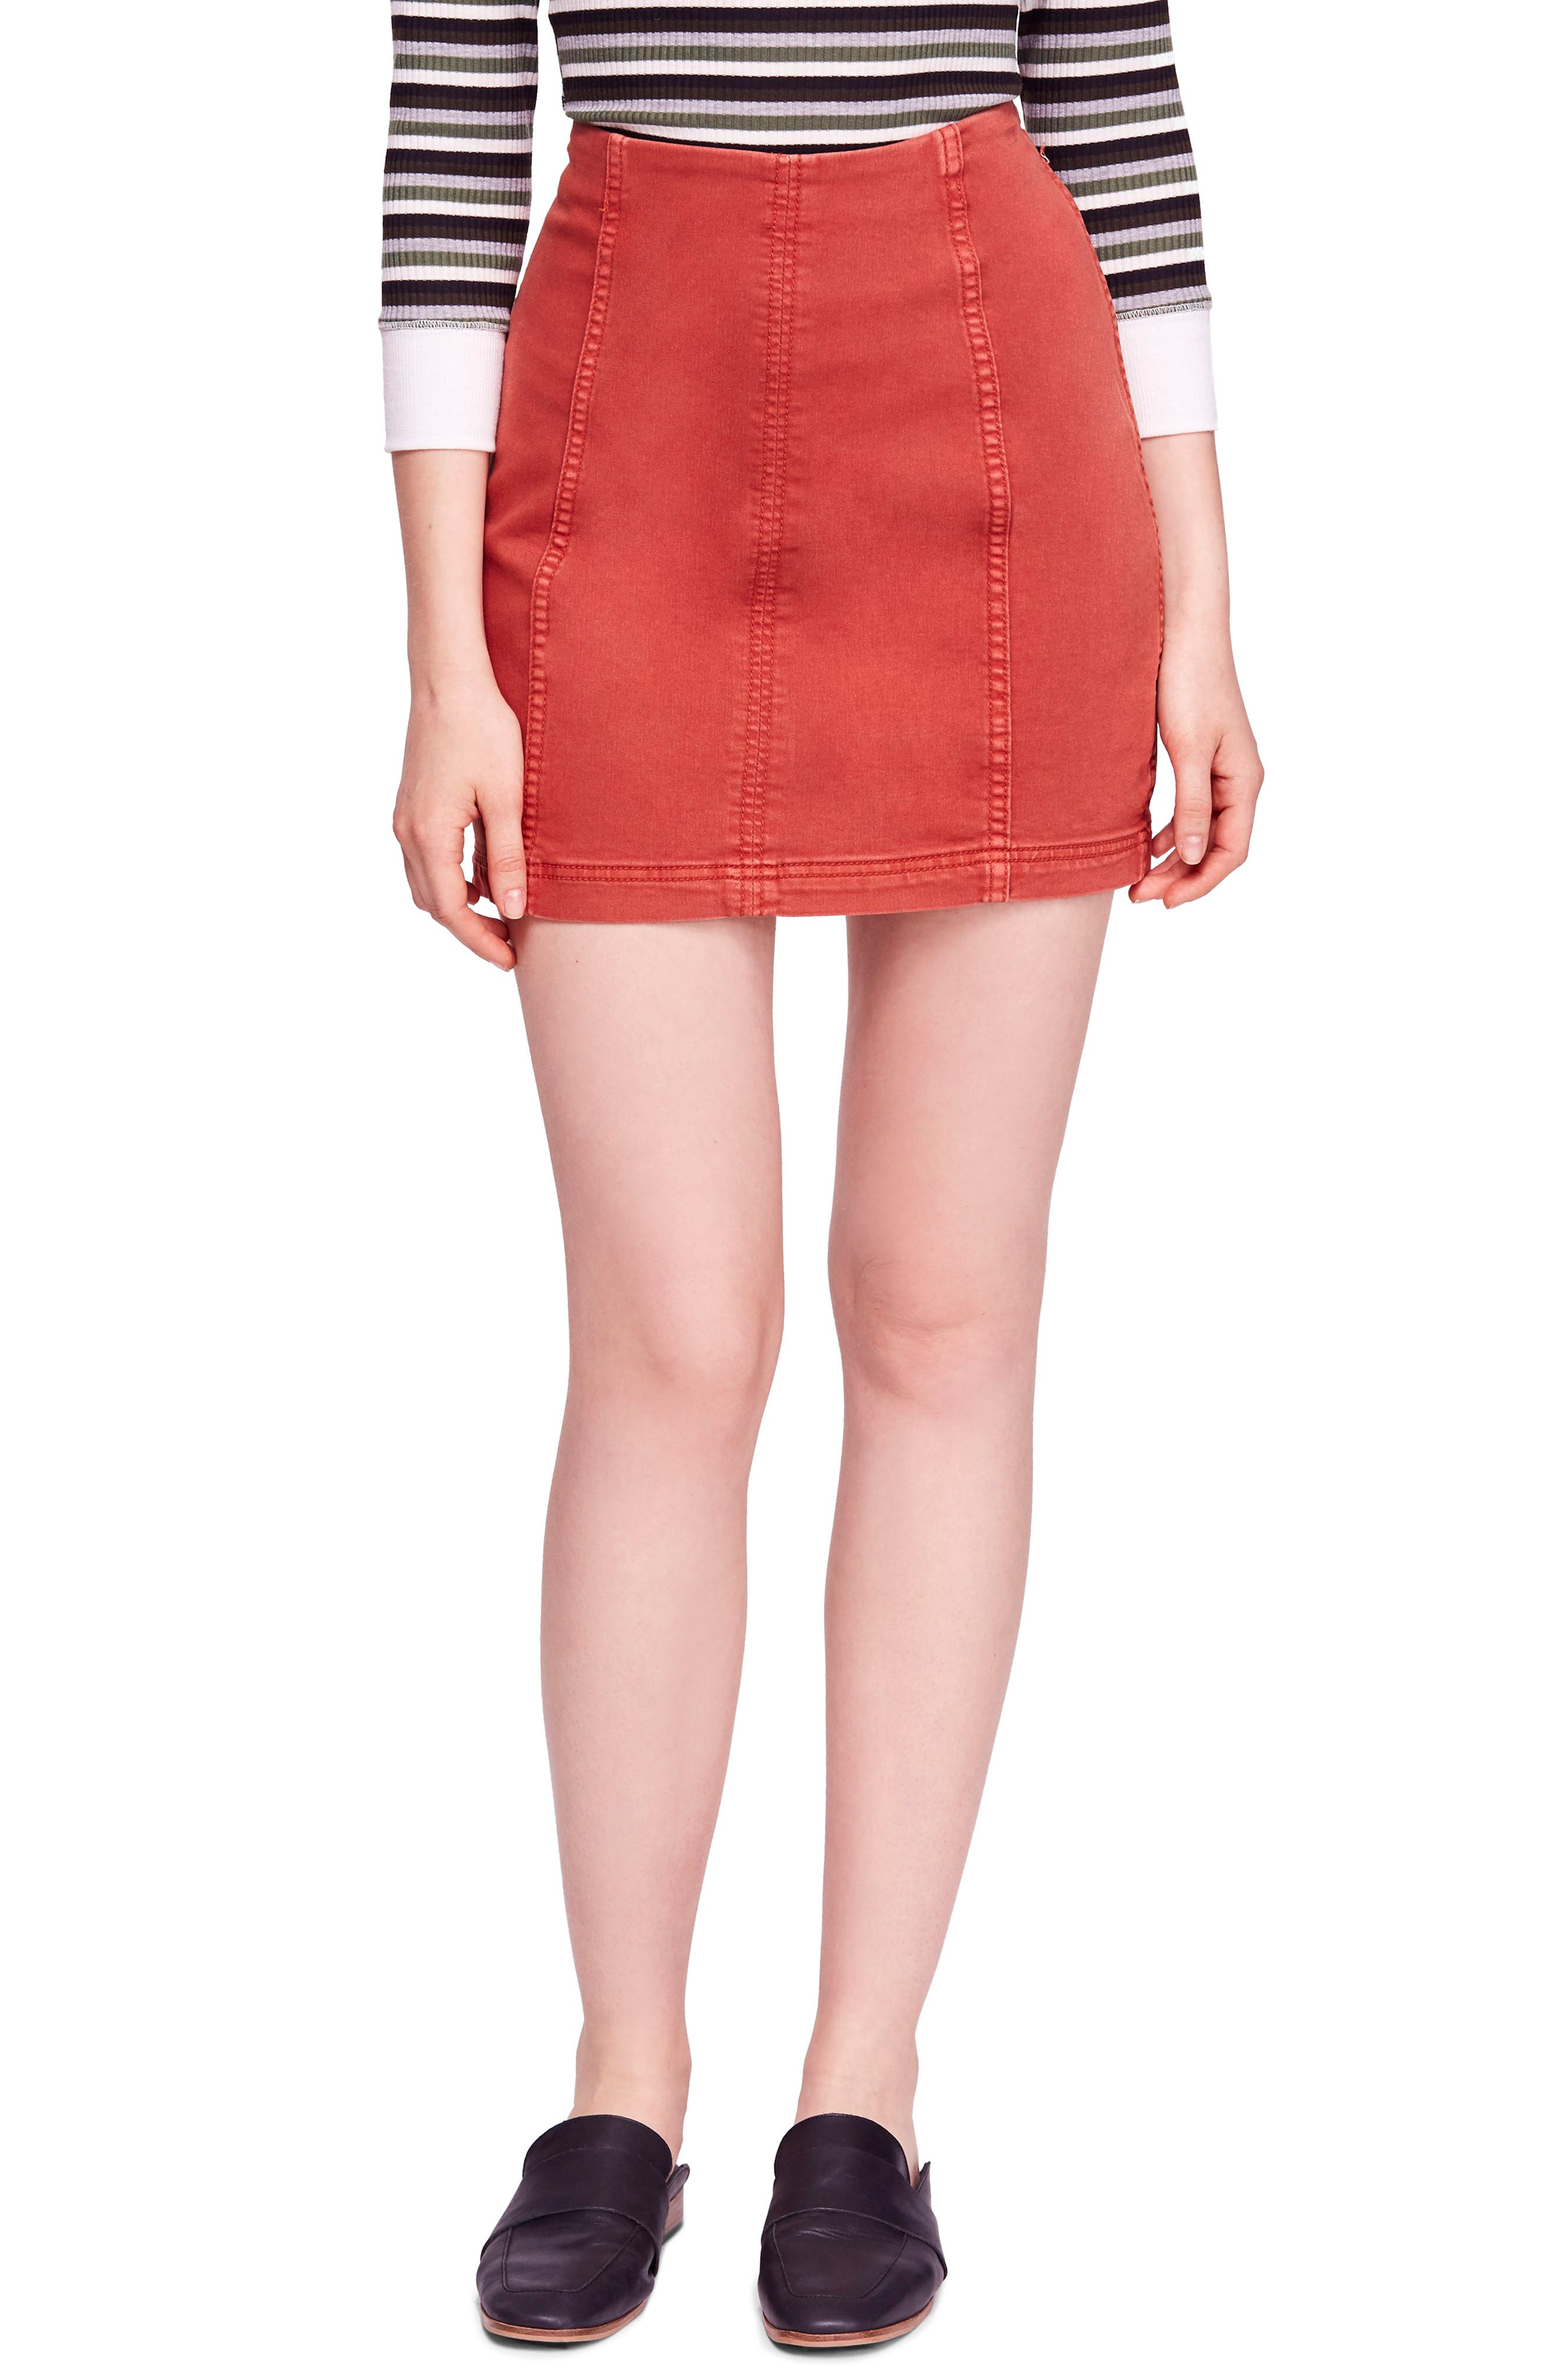 FREE PEOPLE We the Free by Free People Modern Denim Skirt, Main, color, TERRACOTTA